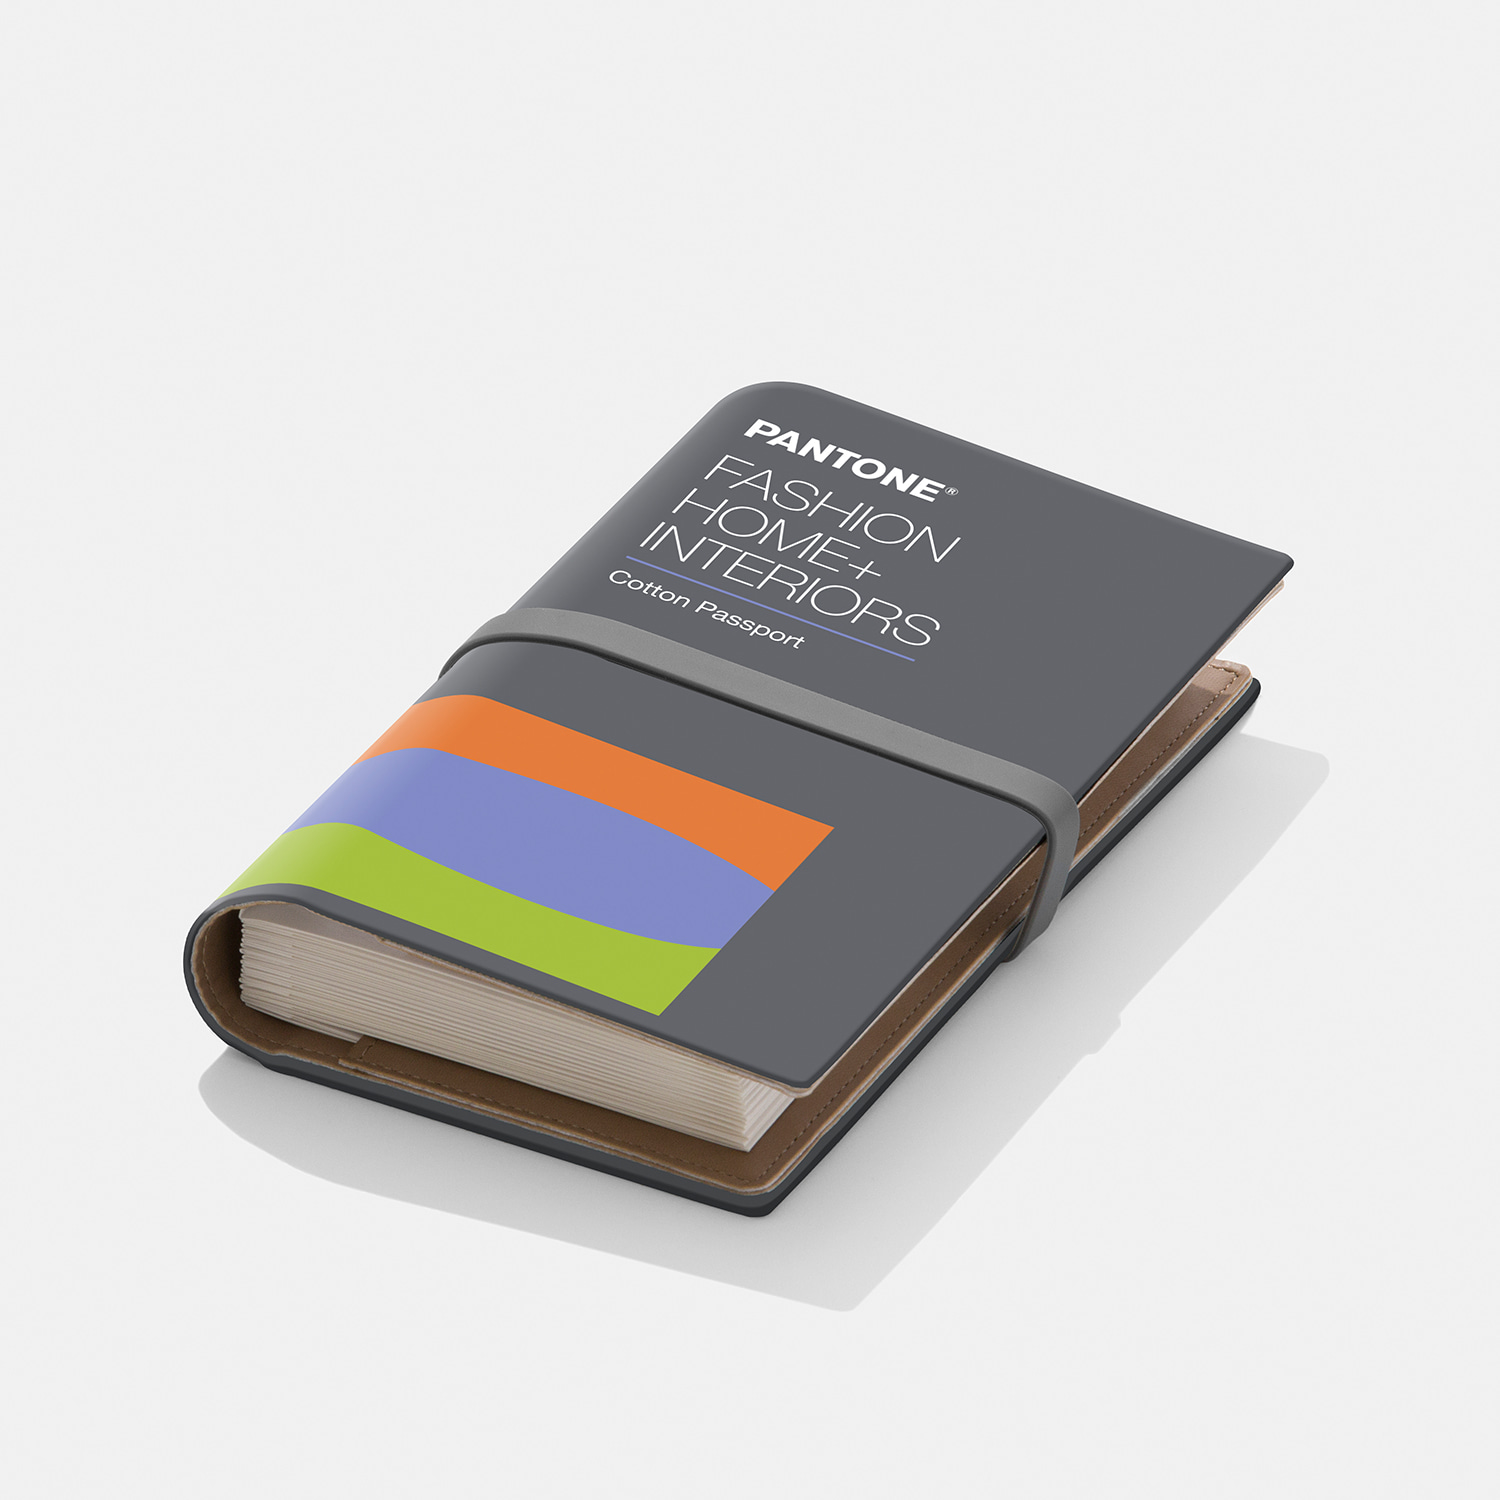 팬톤 TCX 코튼 패스포트 / FHIC200A[PANTONE Cotton Passport]